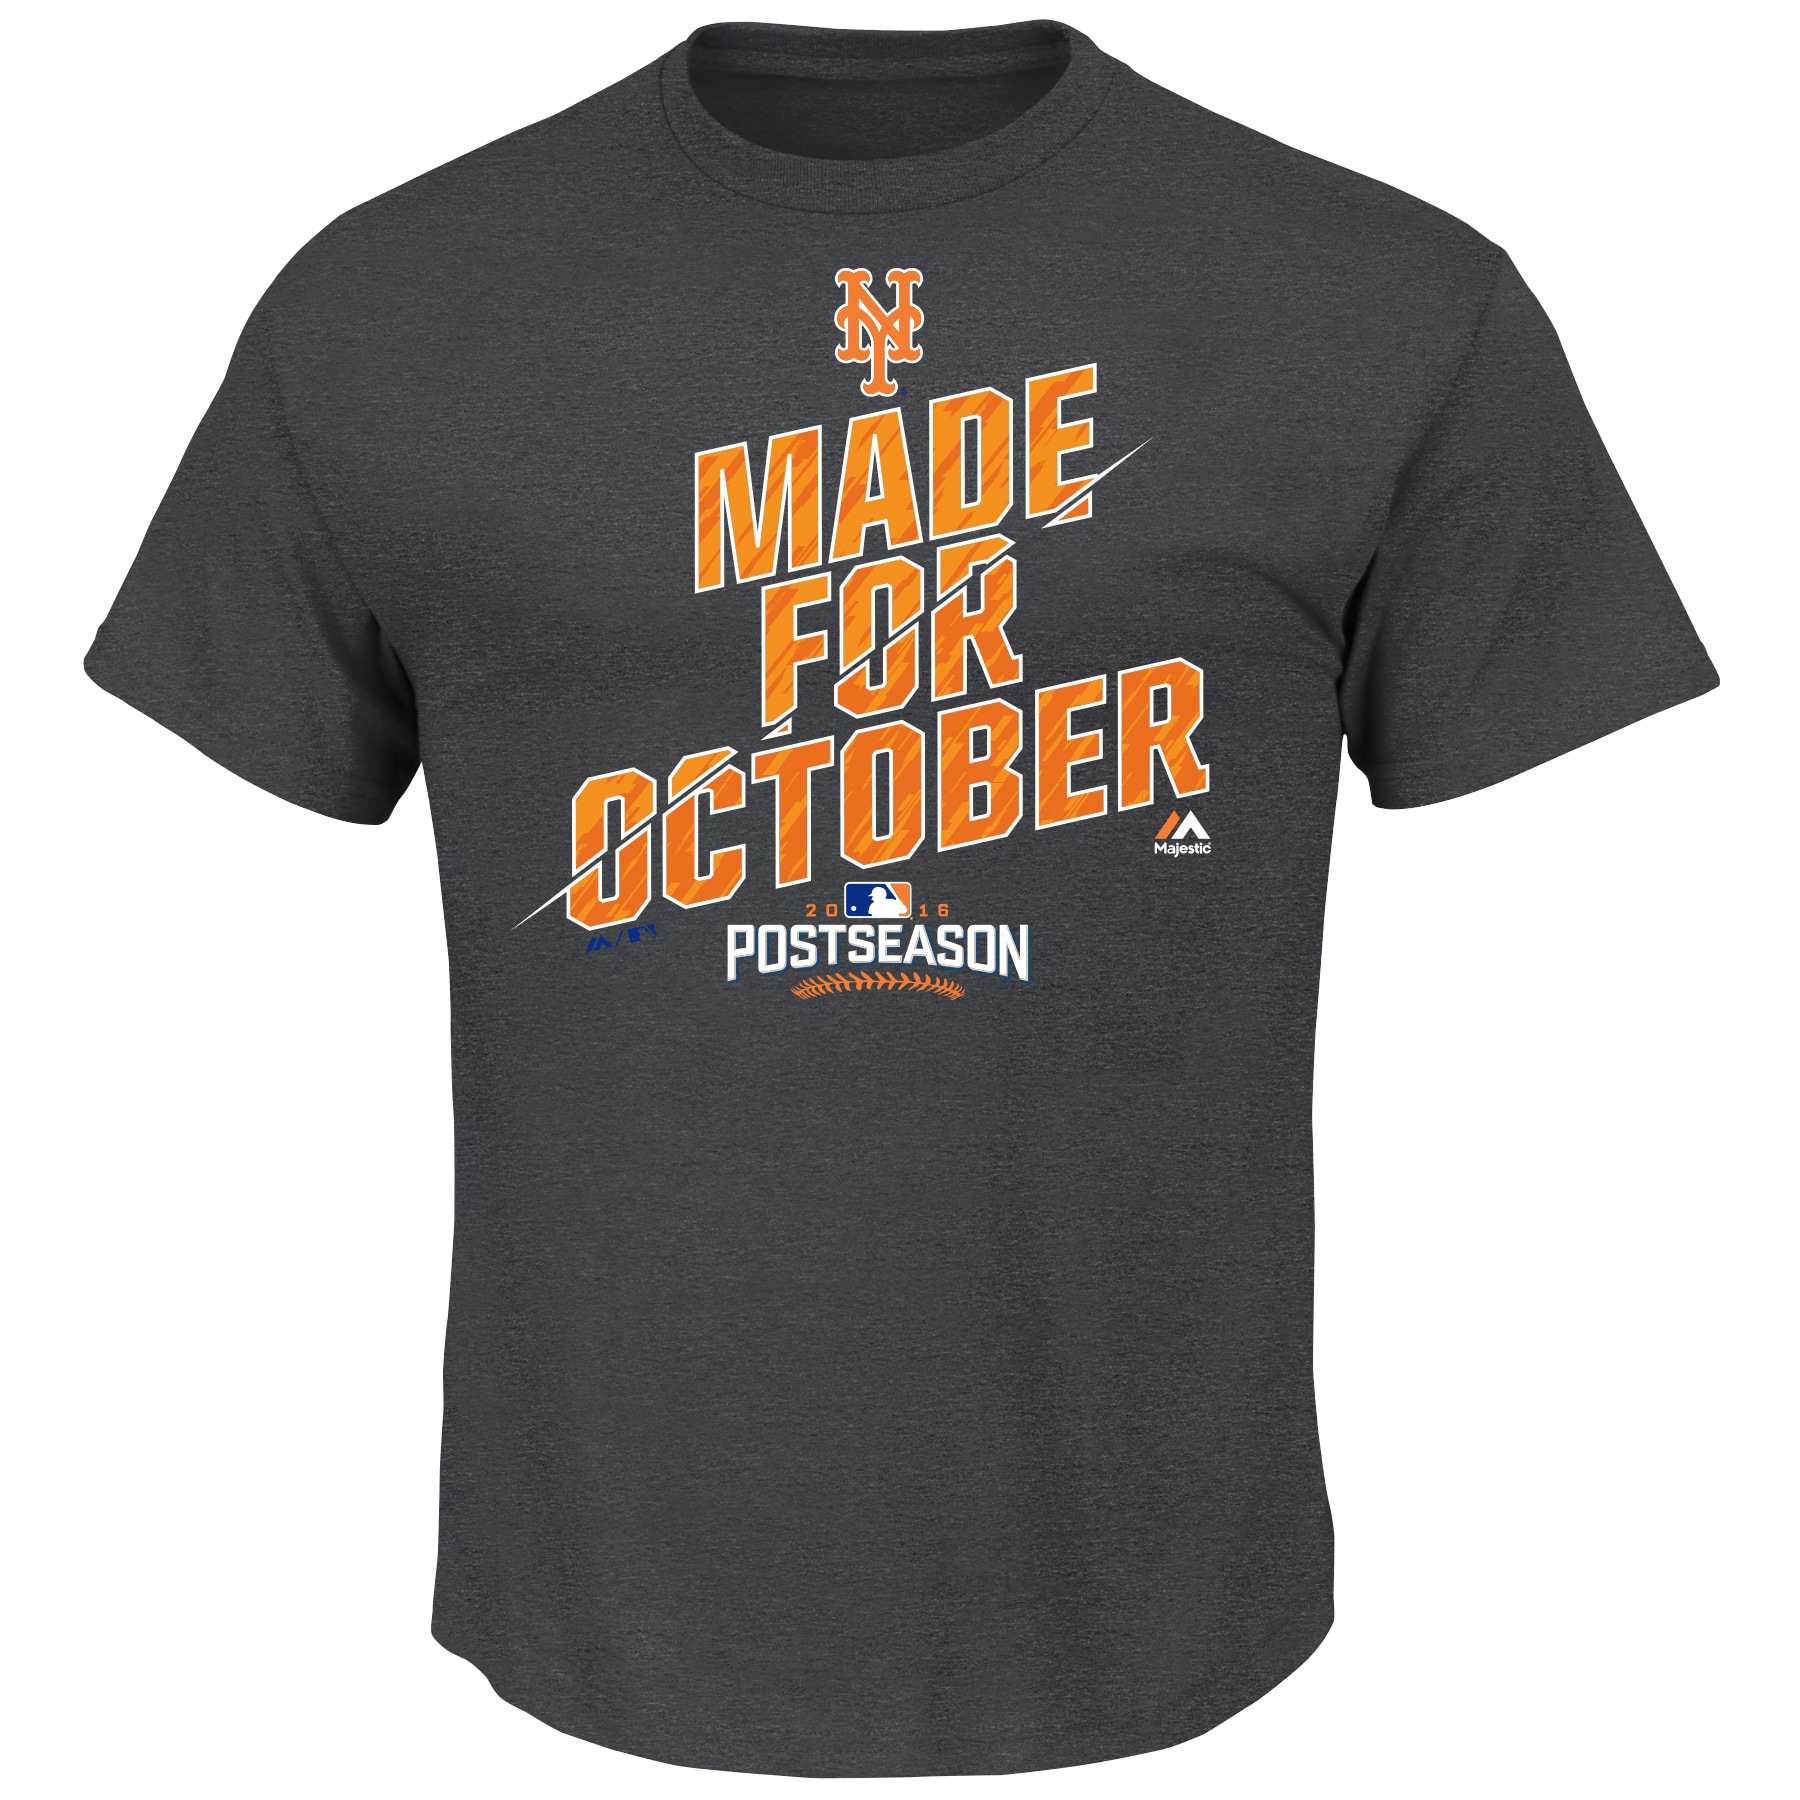 New York Mets Majestic 2016 Postseason Wild Card Clinch Locker Room T-Shirt - Charcoal